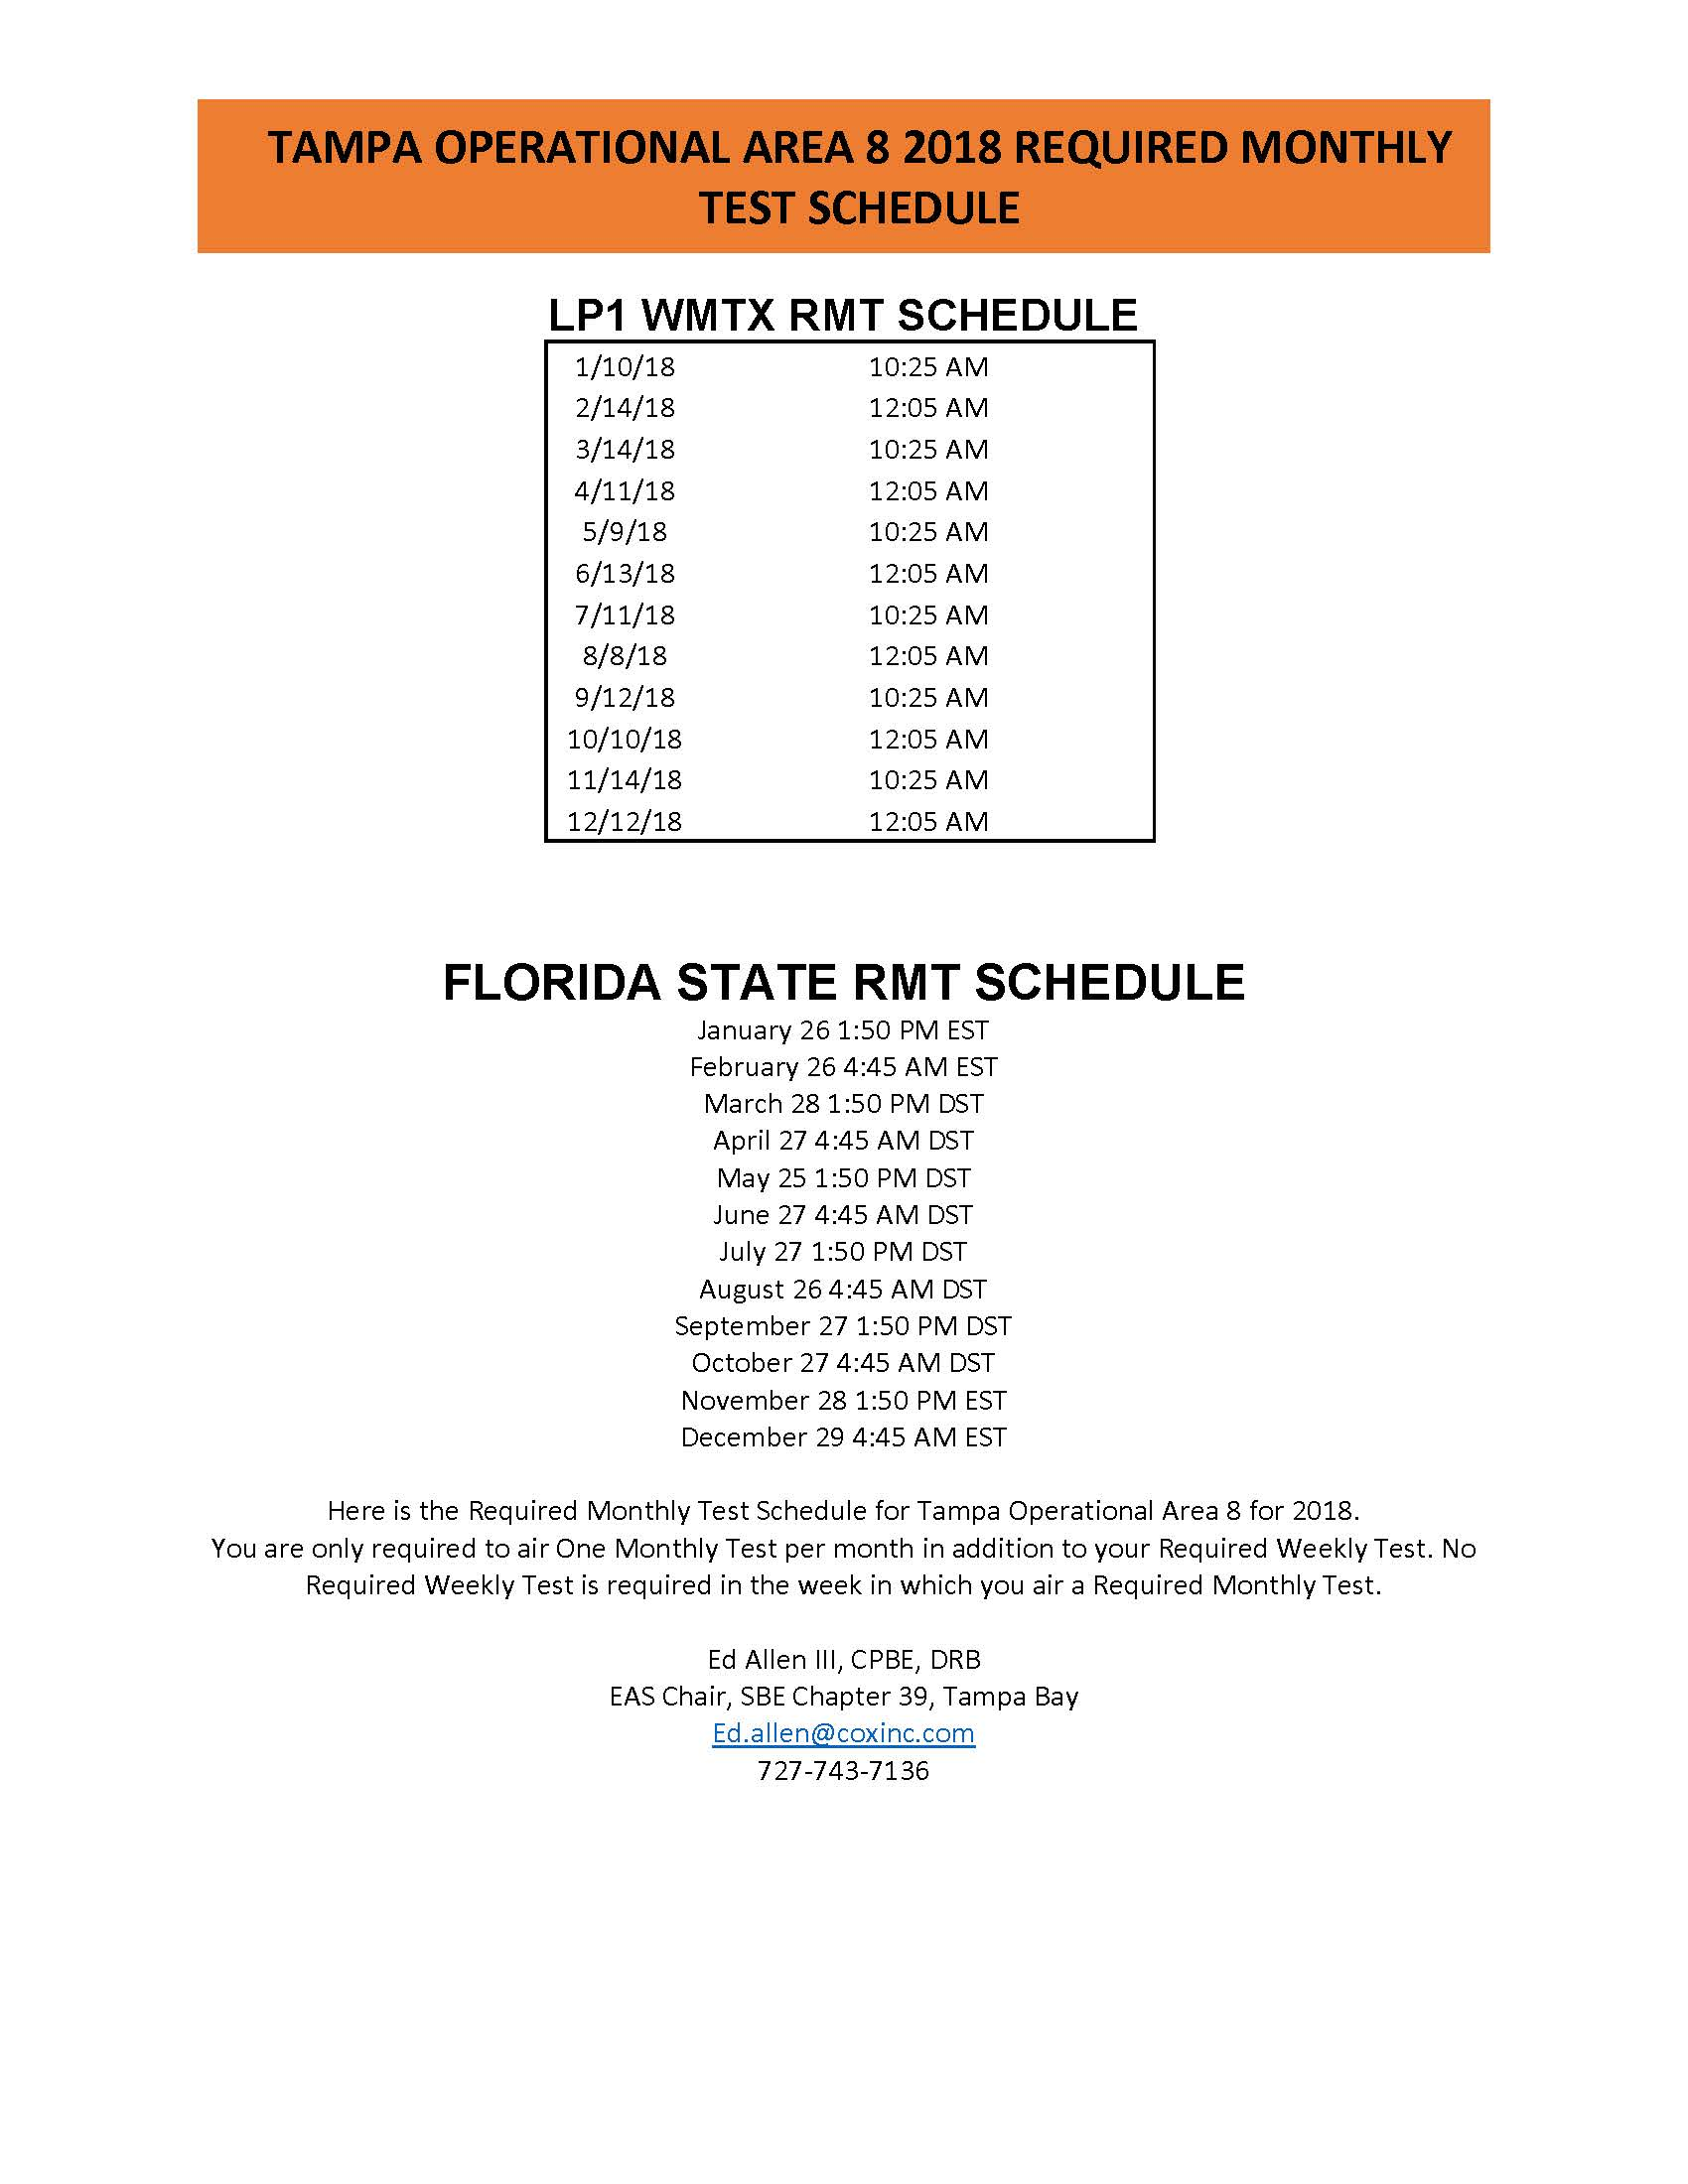 2018 Tampa Operational Area 8 EAS RMT schedule rev2